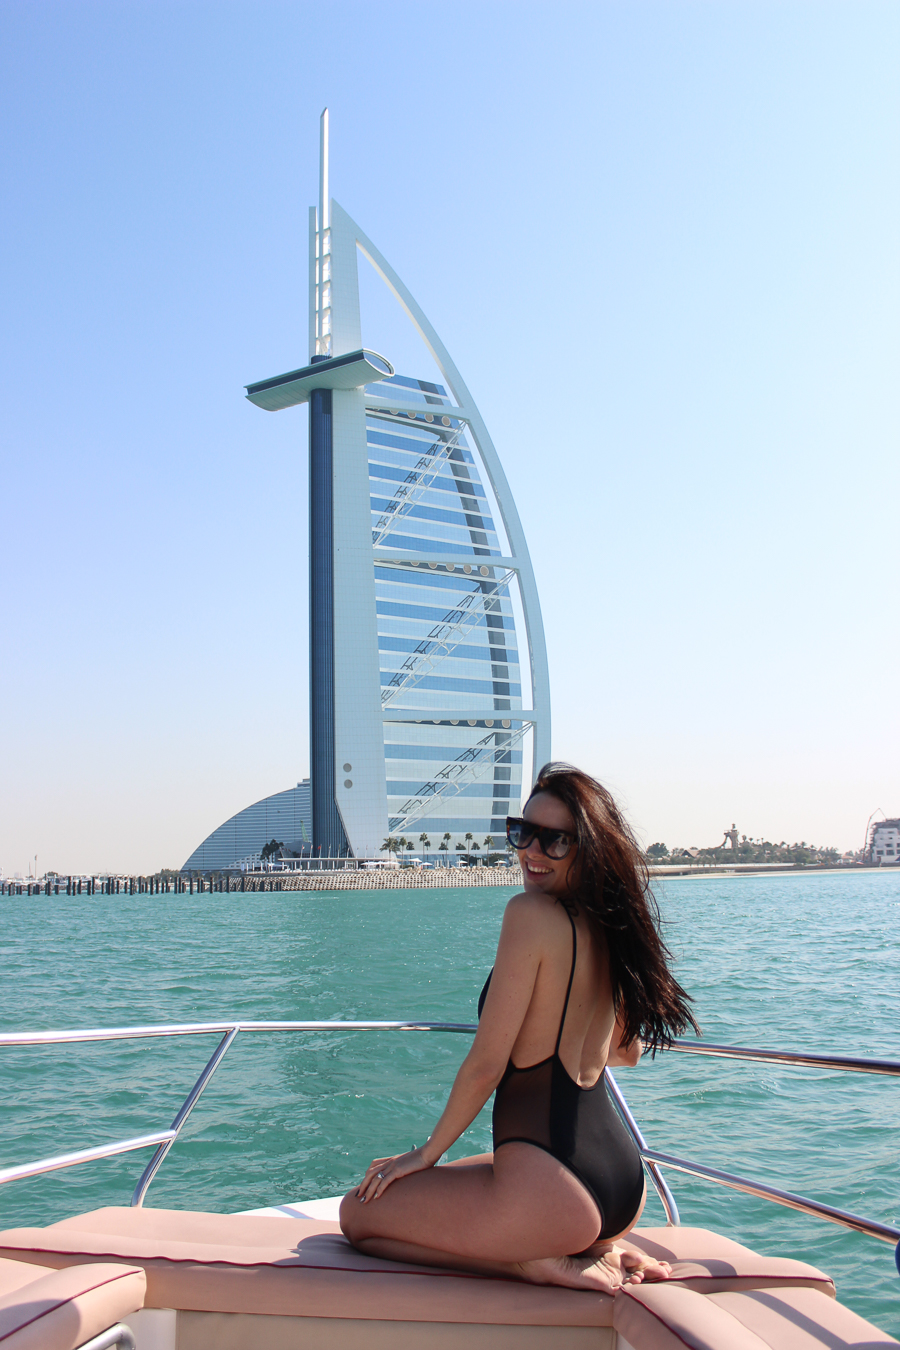 clutch and carry on - uk travel blogger - dubai travel blog - dubai yacht tour - sabrina chakici-31